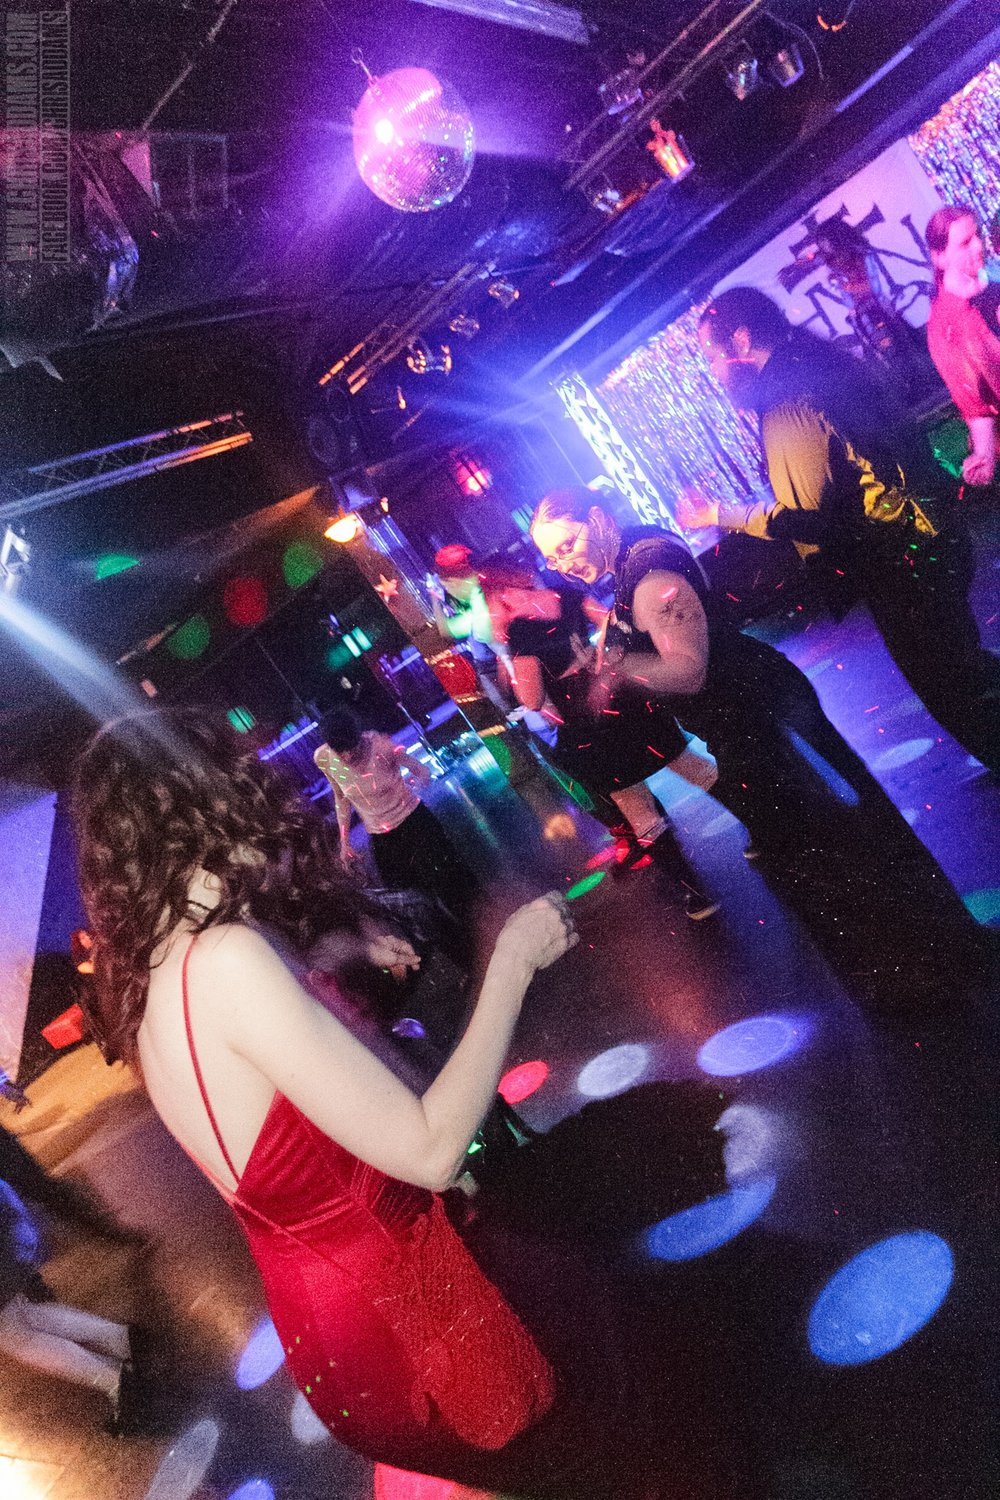 TheHavenClub-Goth-Industrial-Dance-Alternative-Northampton-MA (80).jpg